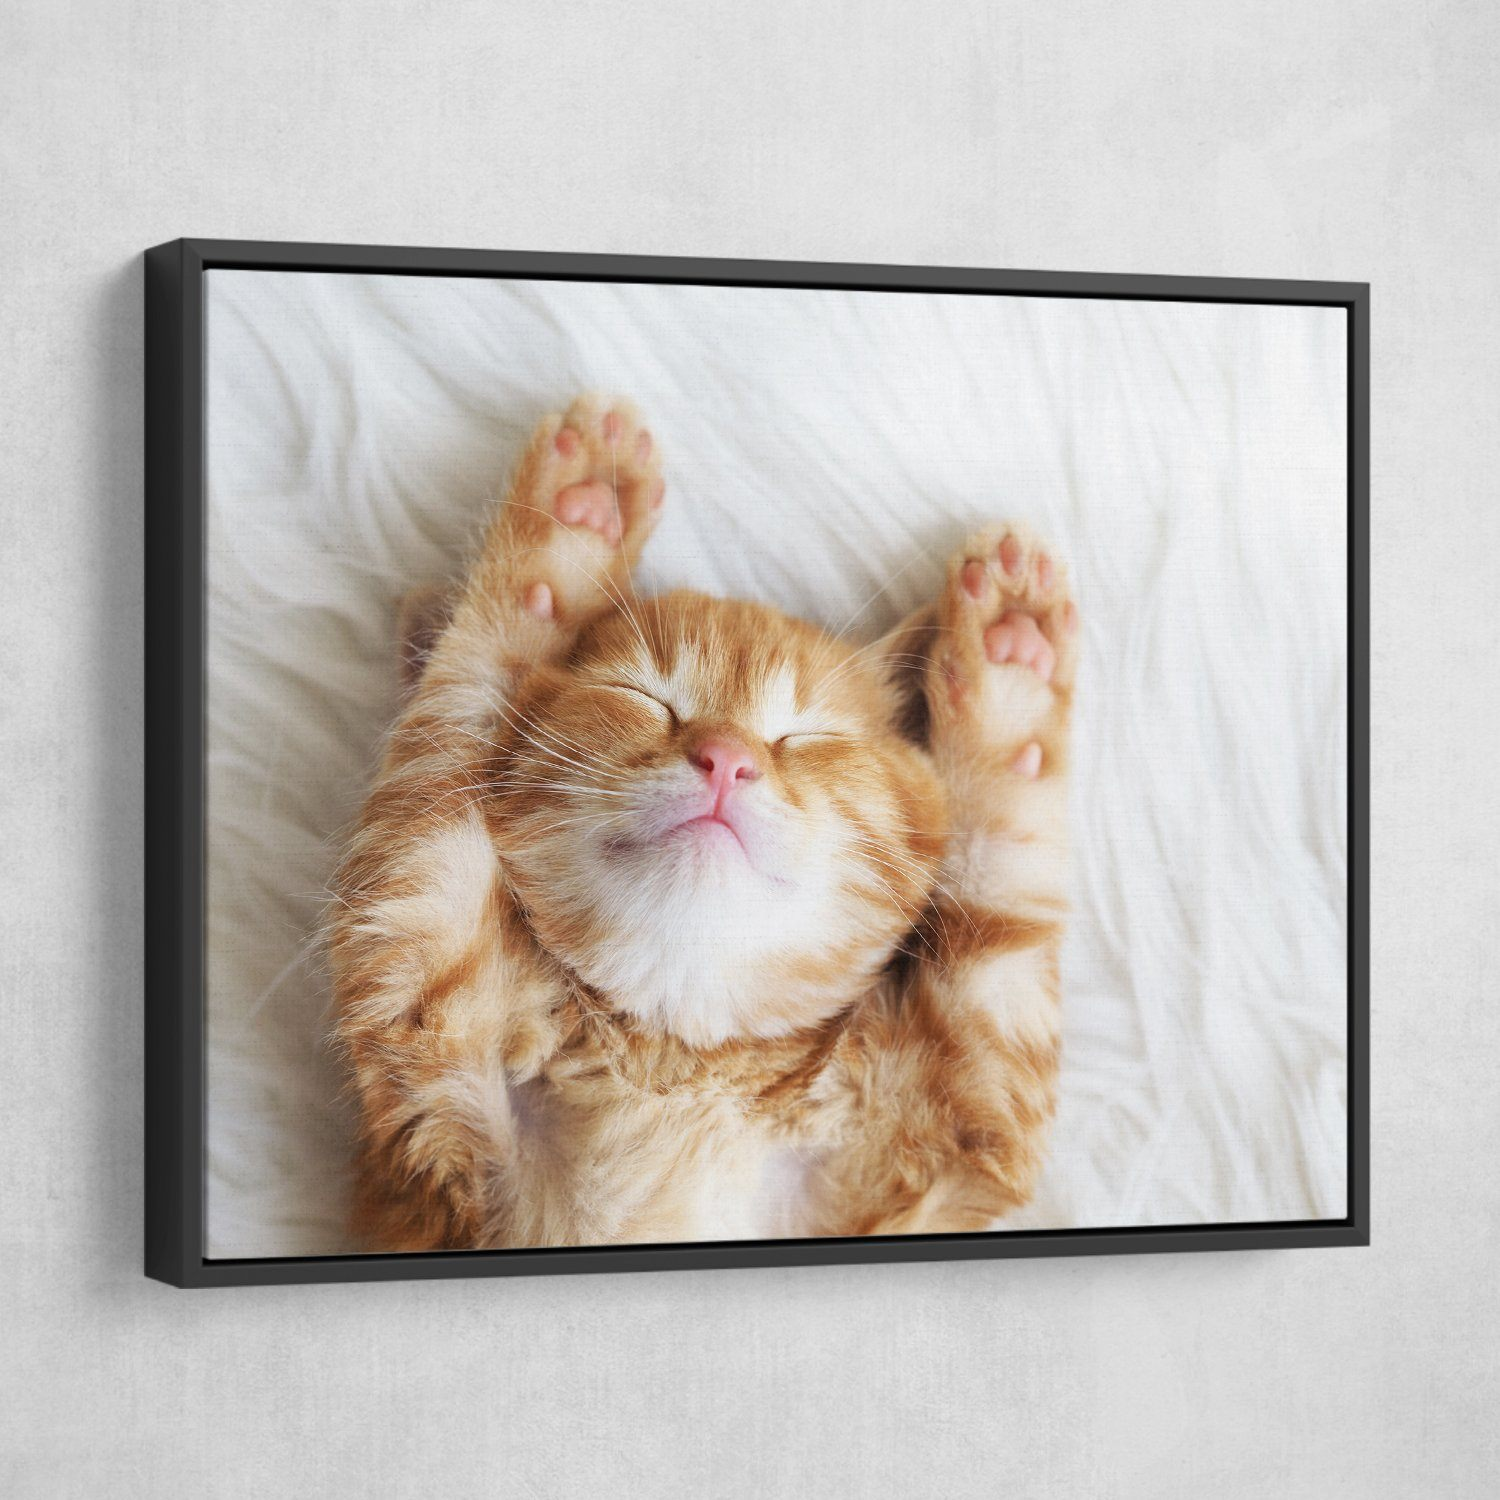 Sleeping Kitten wall art floating frame